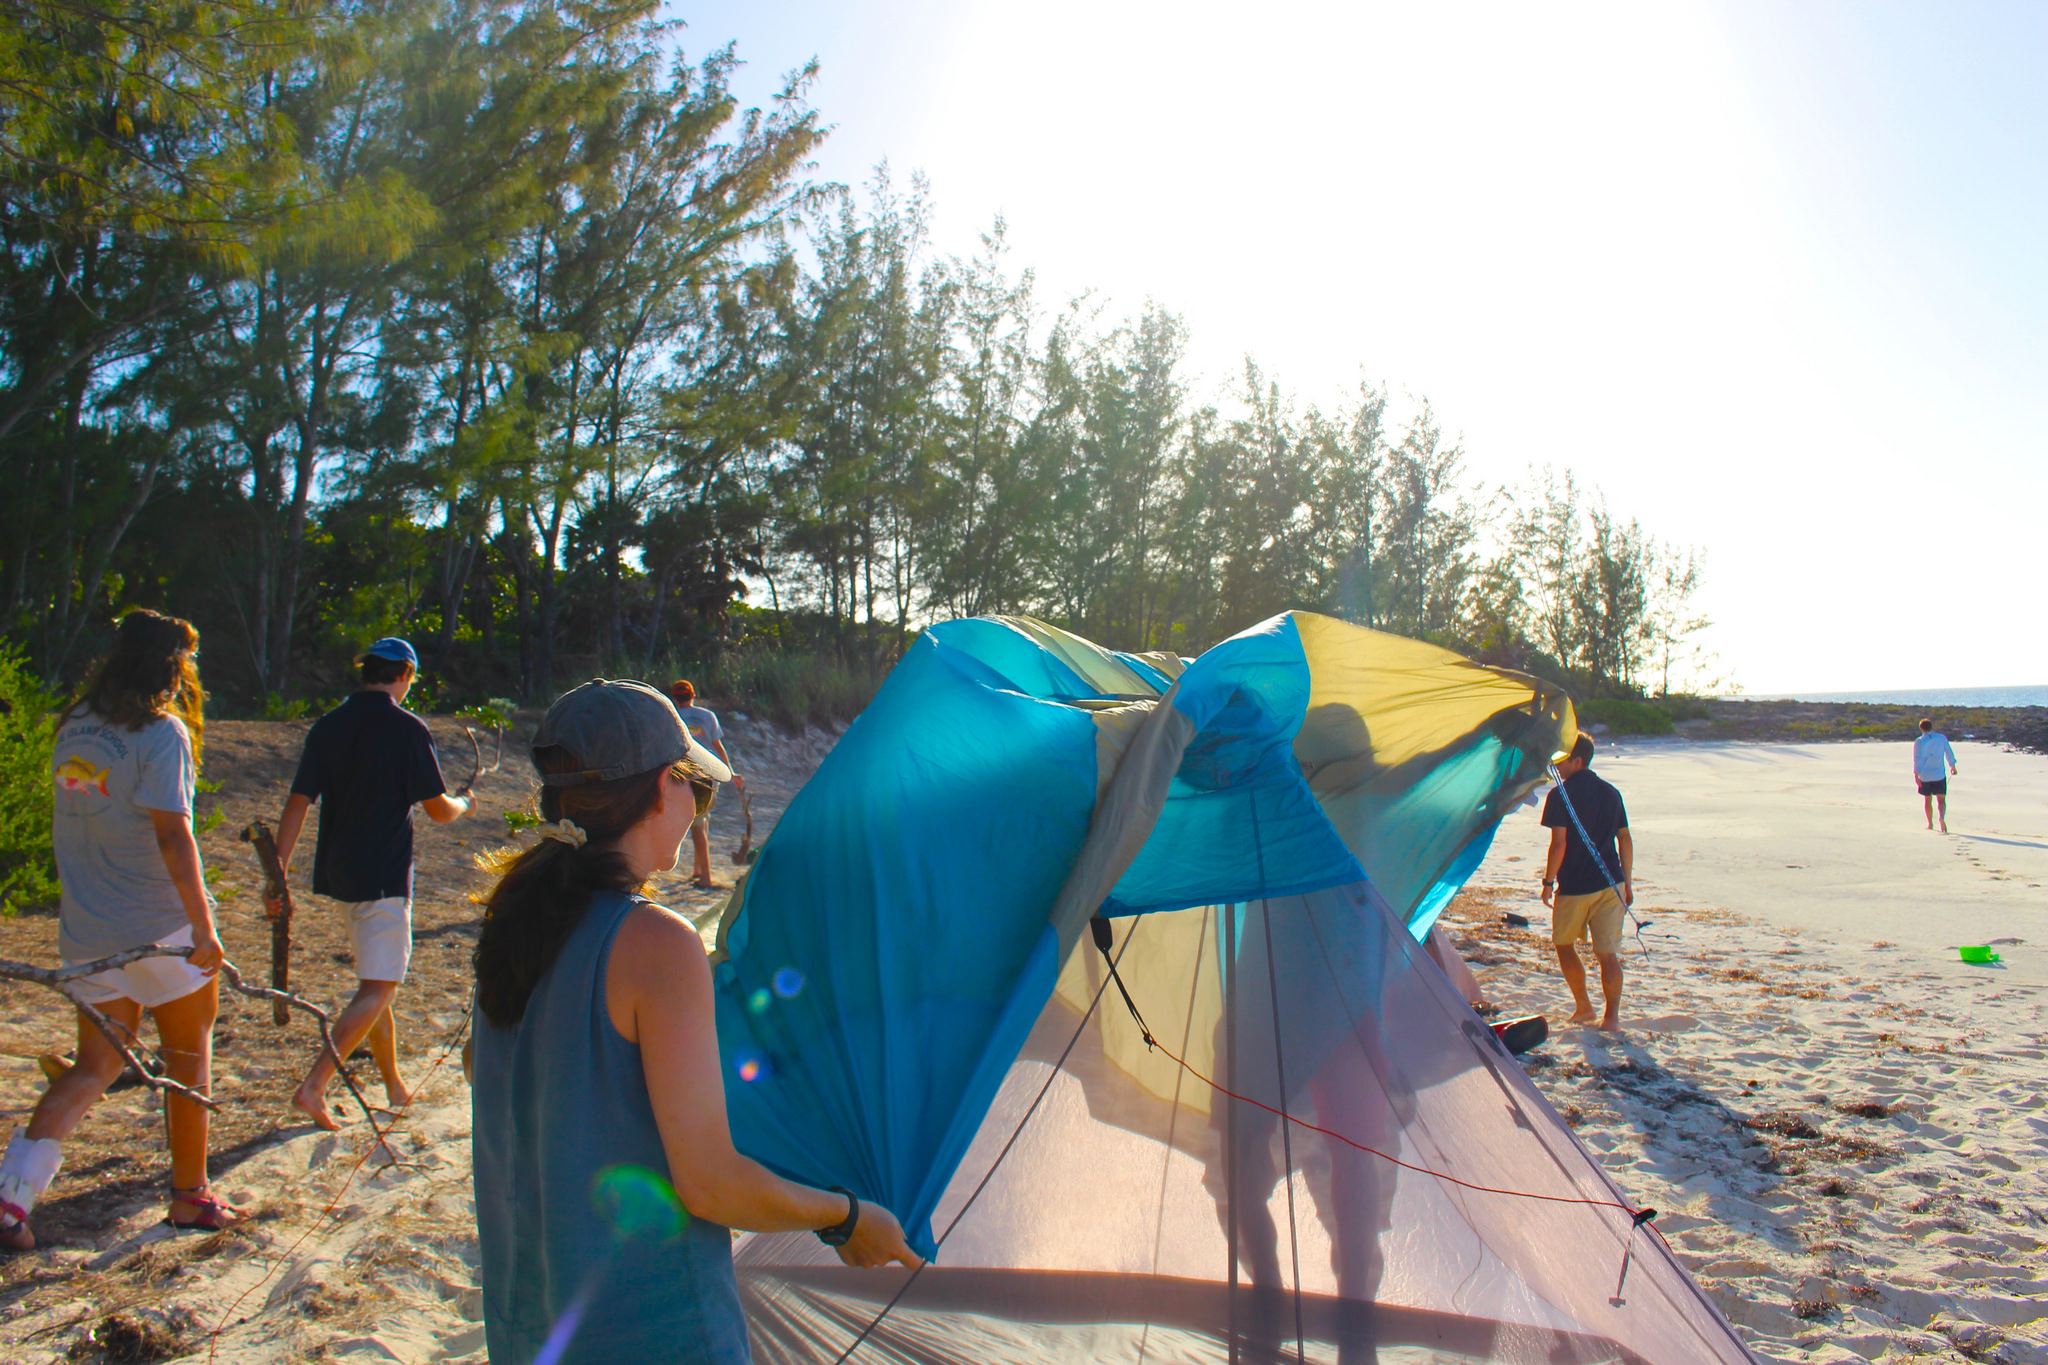 Students and staff work together to set up their campsite during a Down Island trip.